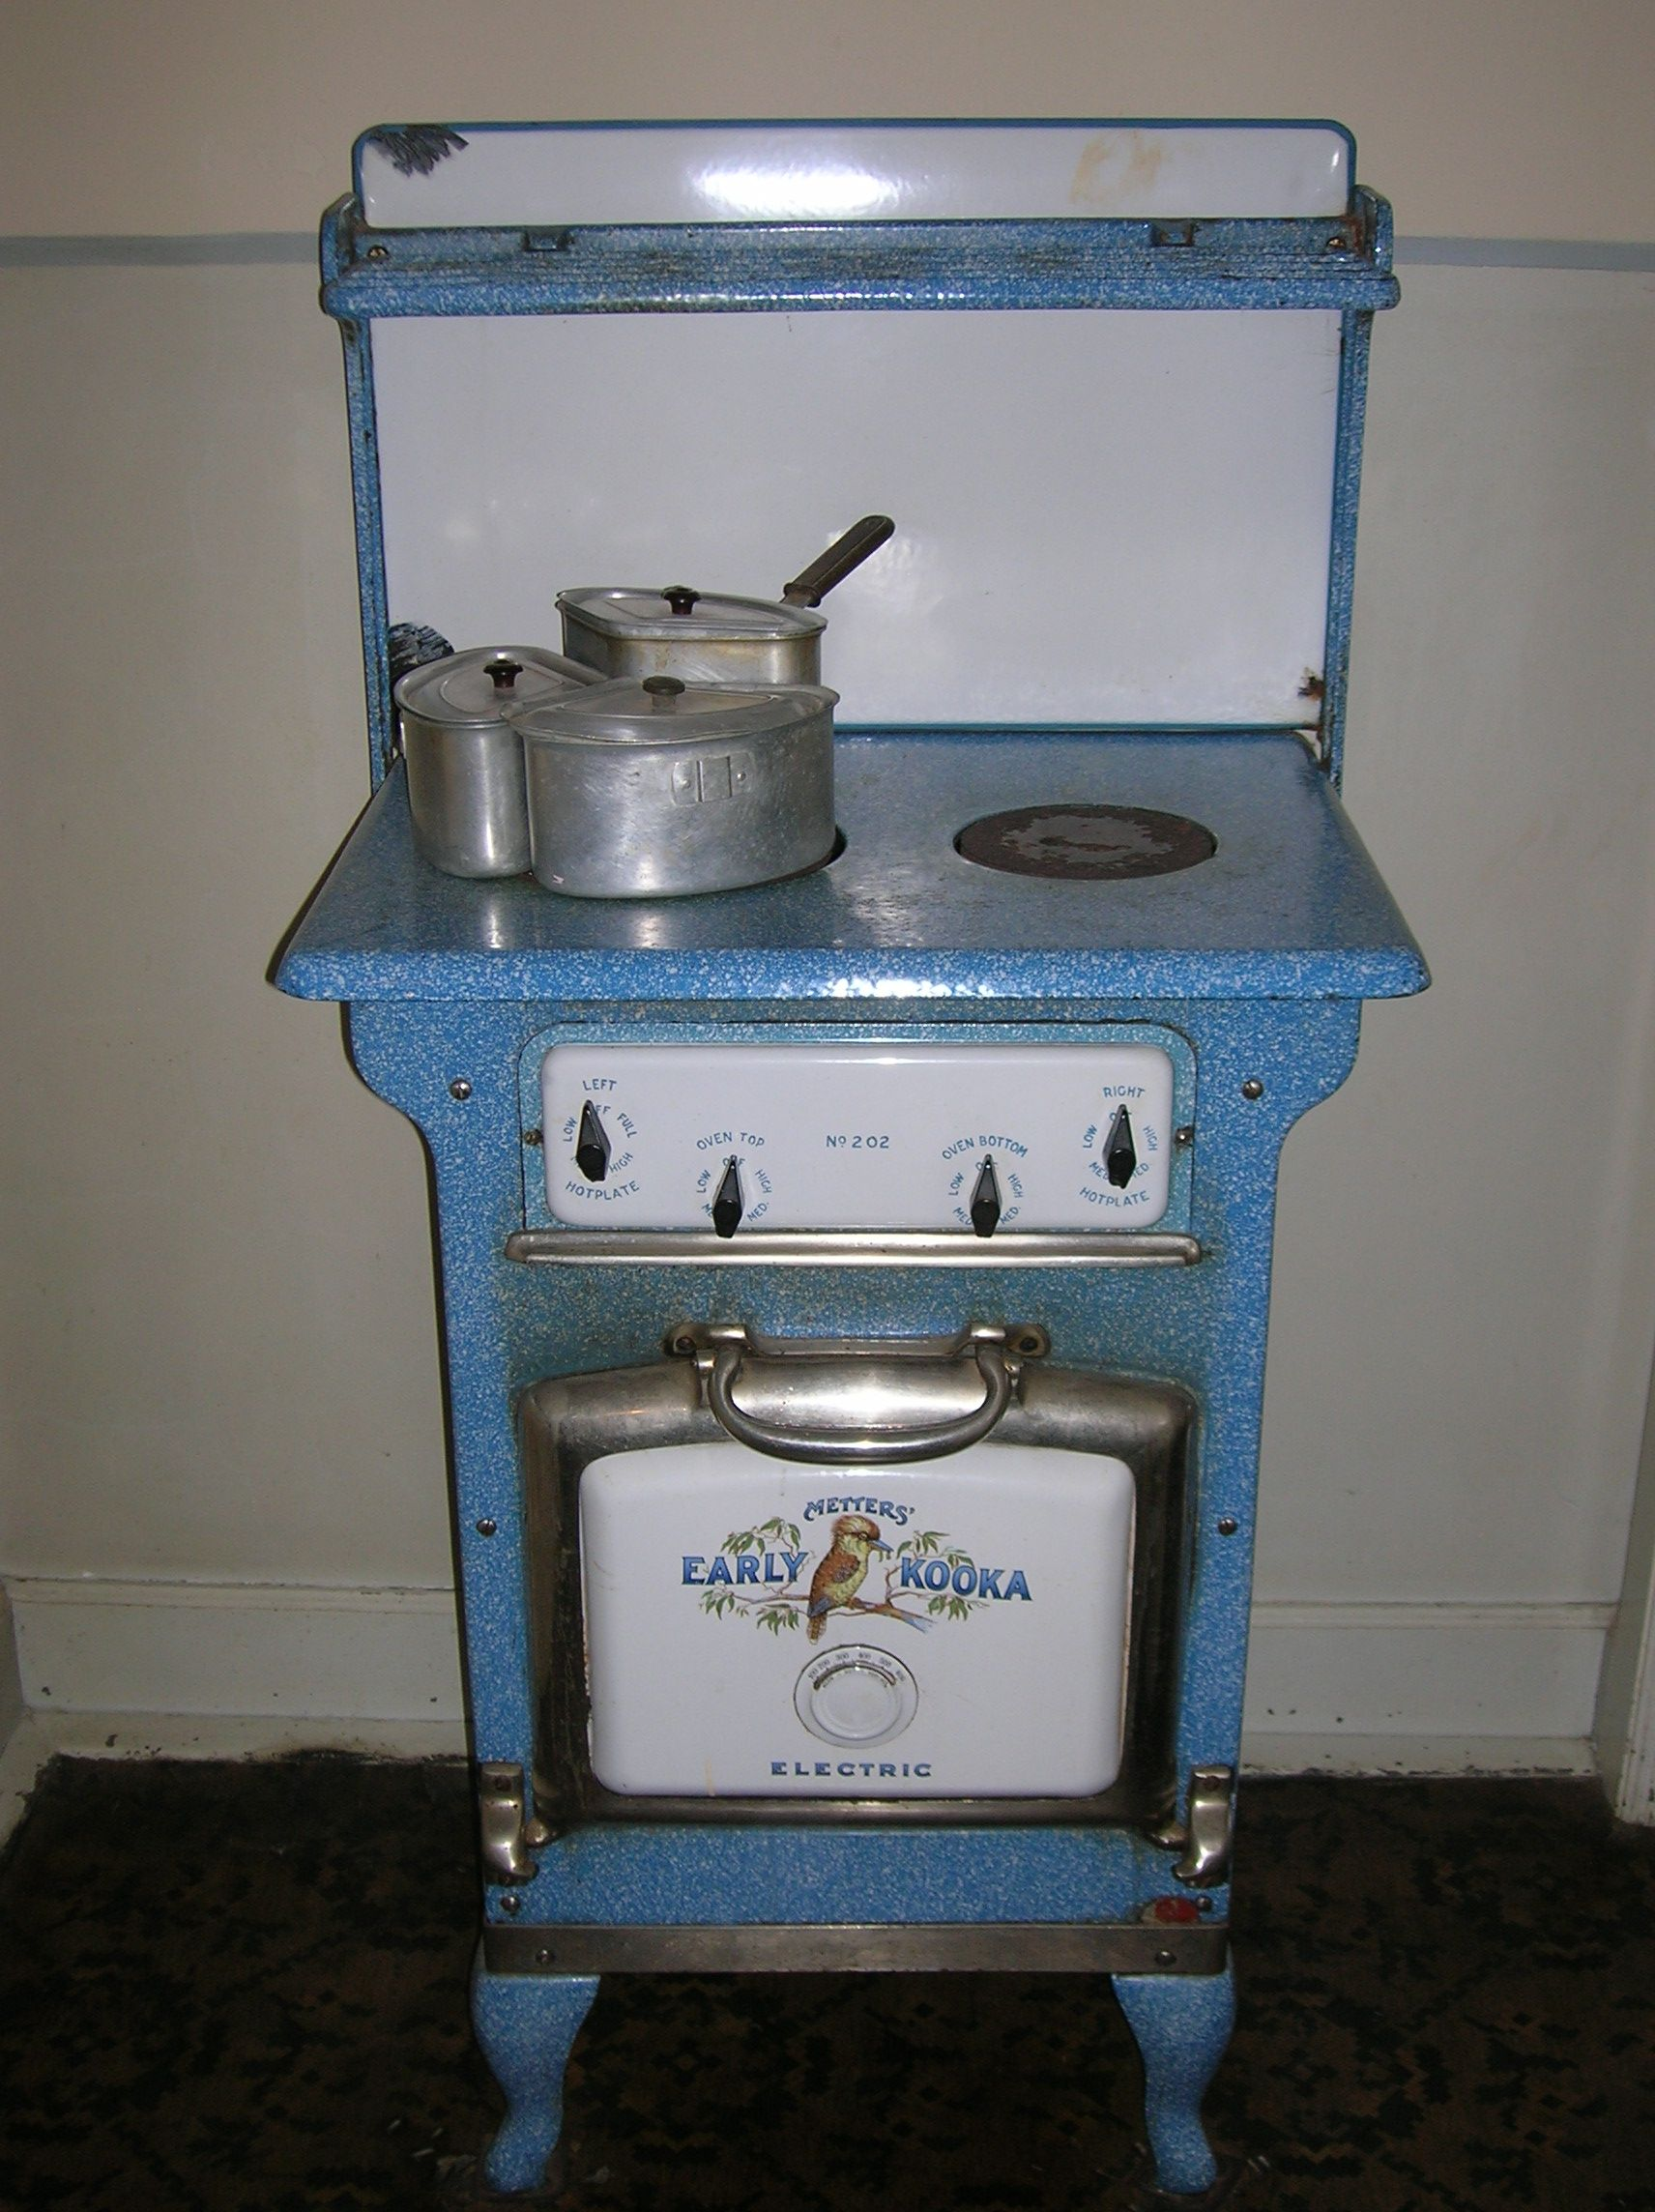 Retro Kitchen Stoves Cabinet Covers Vintage Electric Stove Calthorpe House Canberra